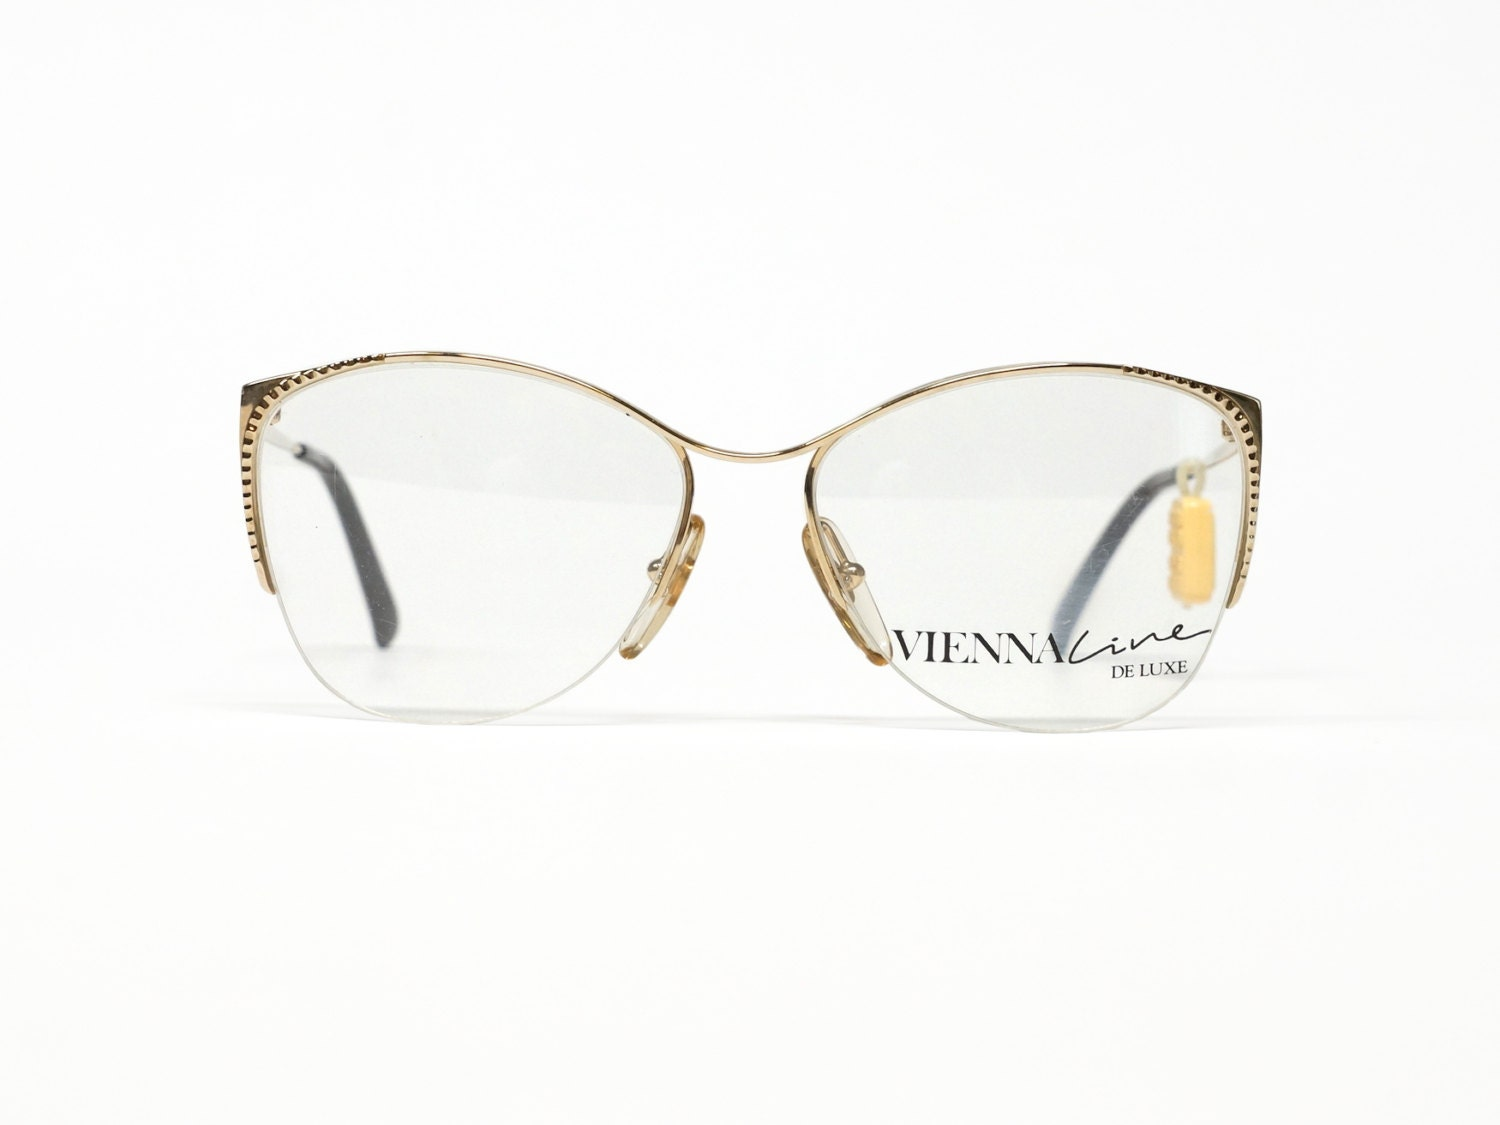 Eyeglass Frames Fairview Heights Il : Half Rimmed Gold Eyeglass Frame by Vienna Line made in Germany